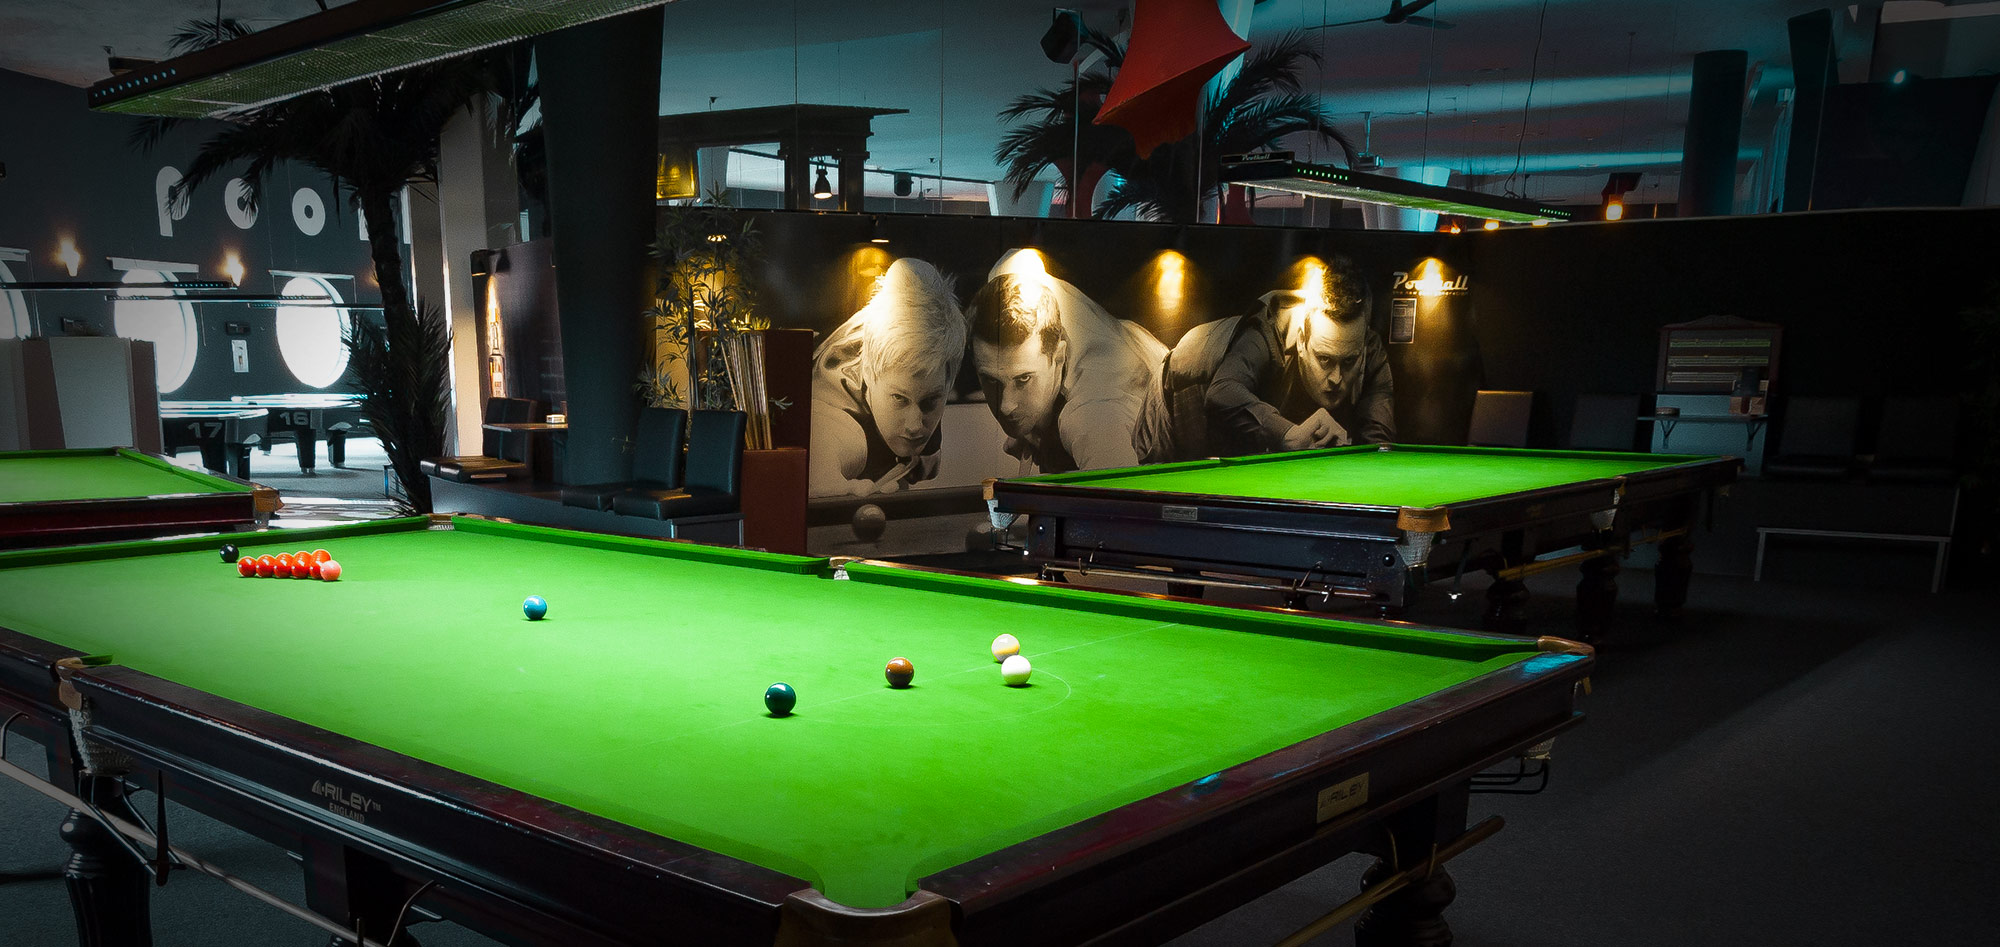 snooker_poolhall_linz